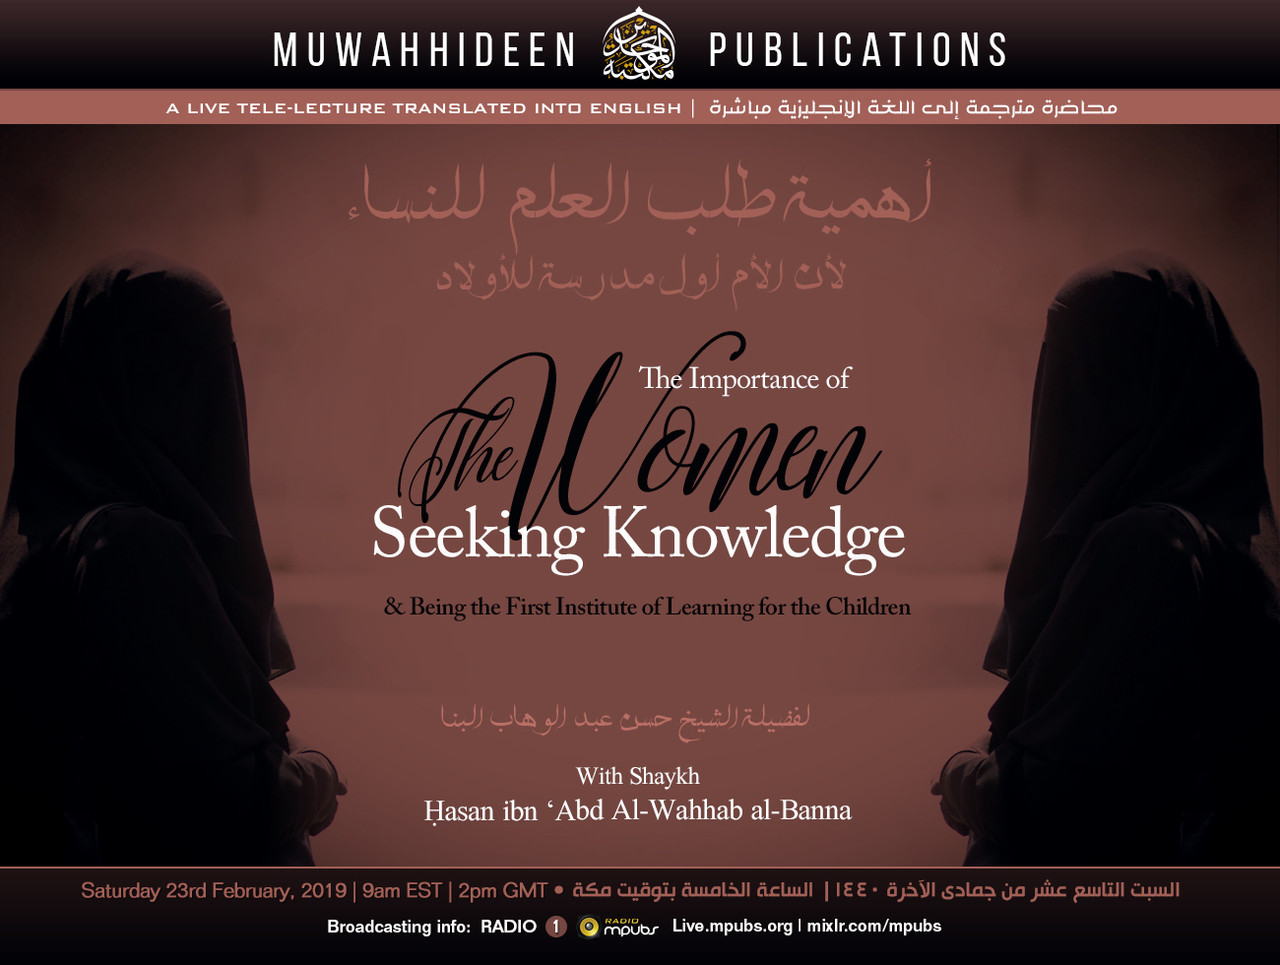 The Importance of The Women Seeking Knowledge by Shaykh